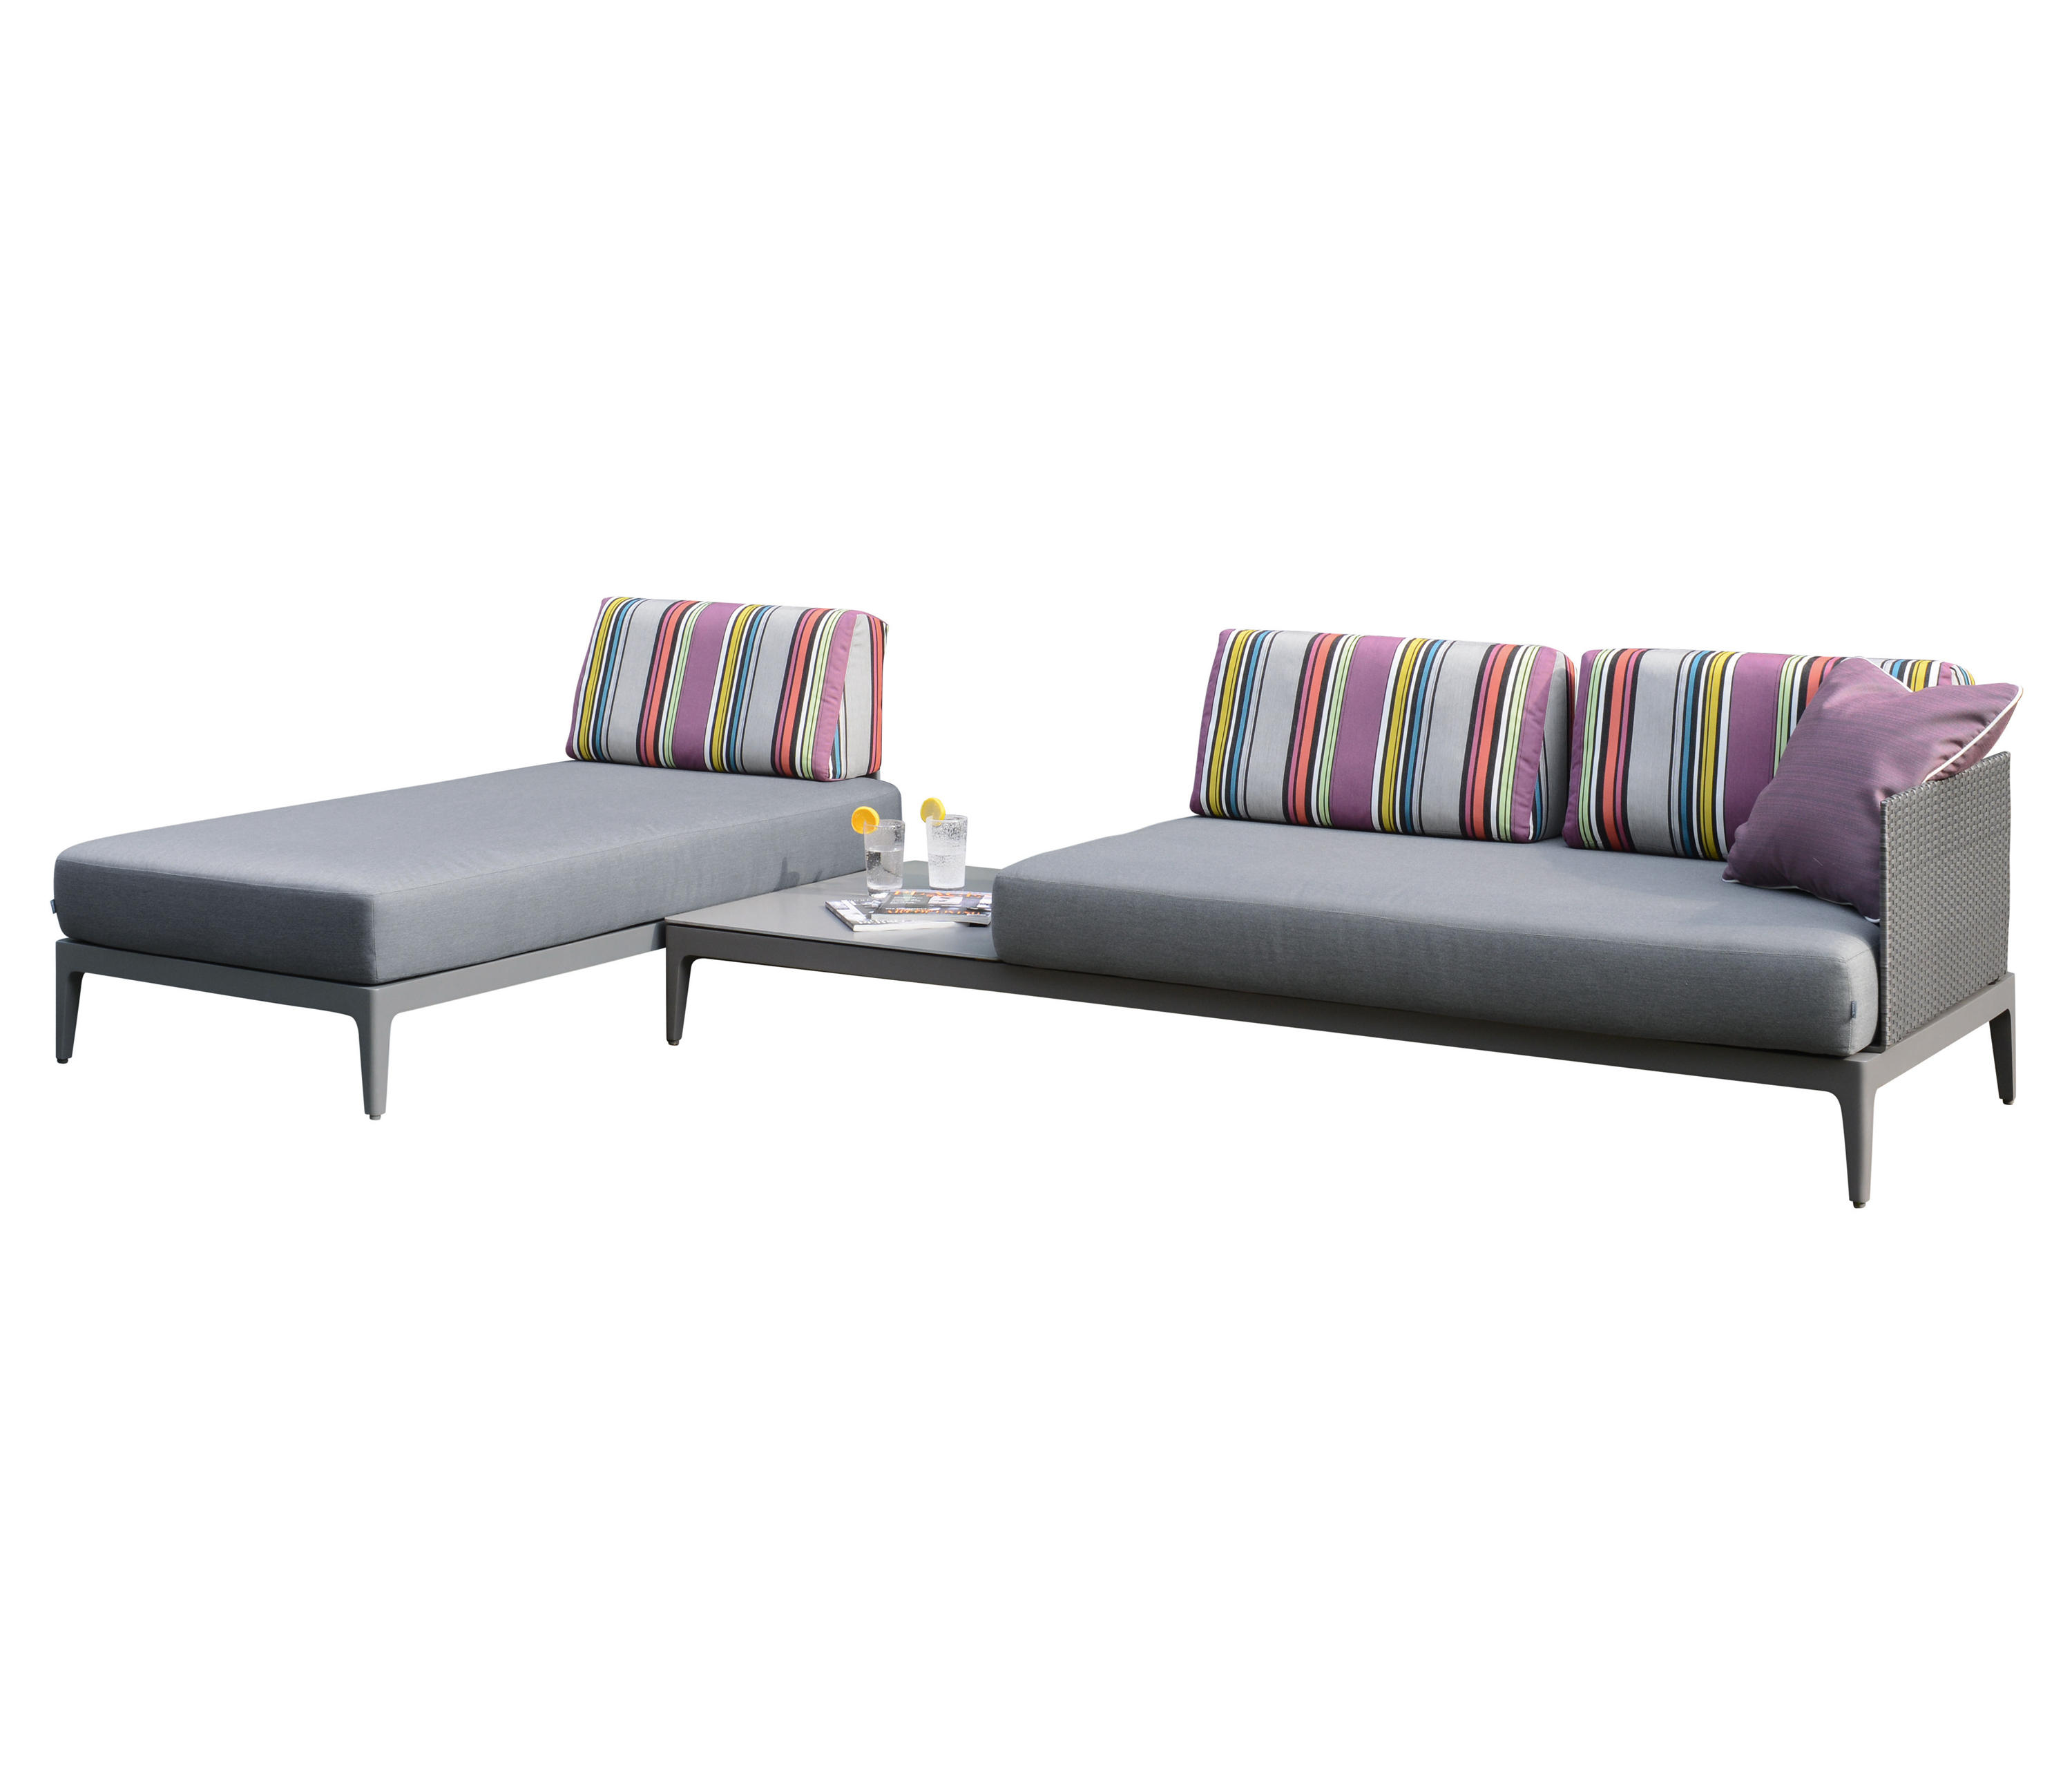 moments combination 1 garden sofas from rausch classics. Black Bedroom Furniture Sets. Home Design Ideas